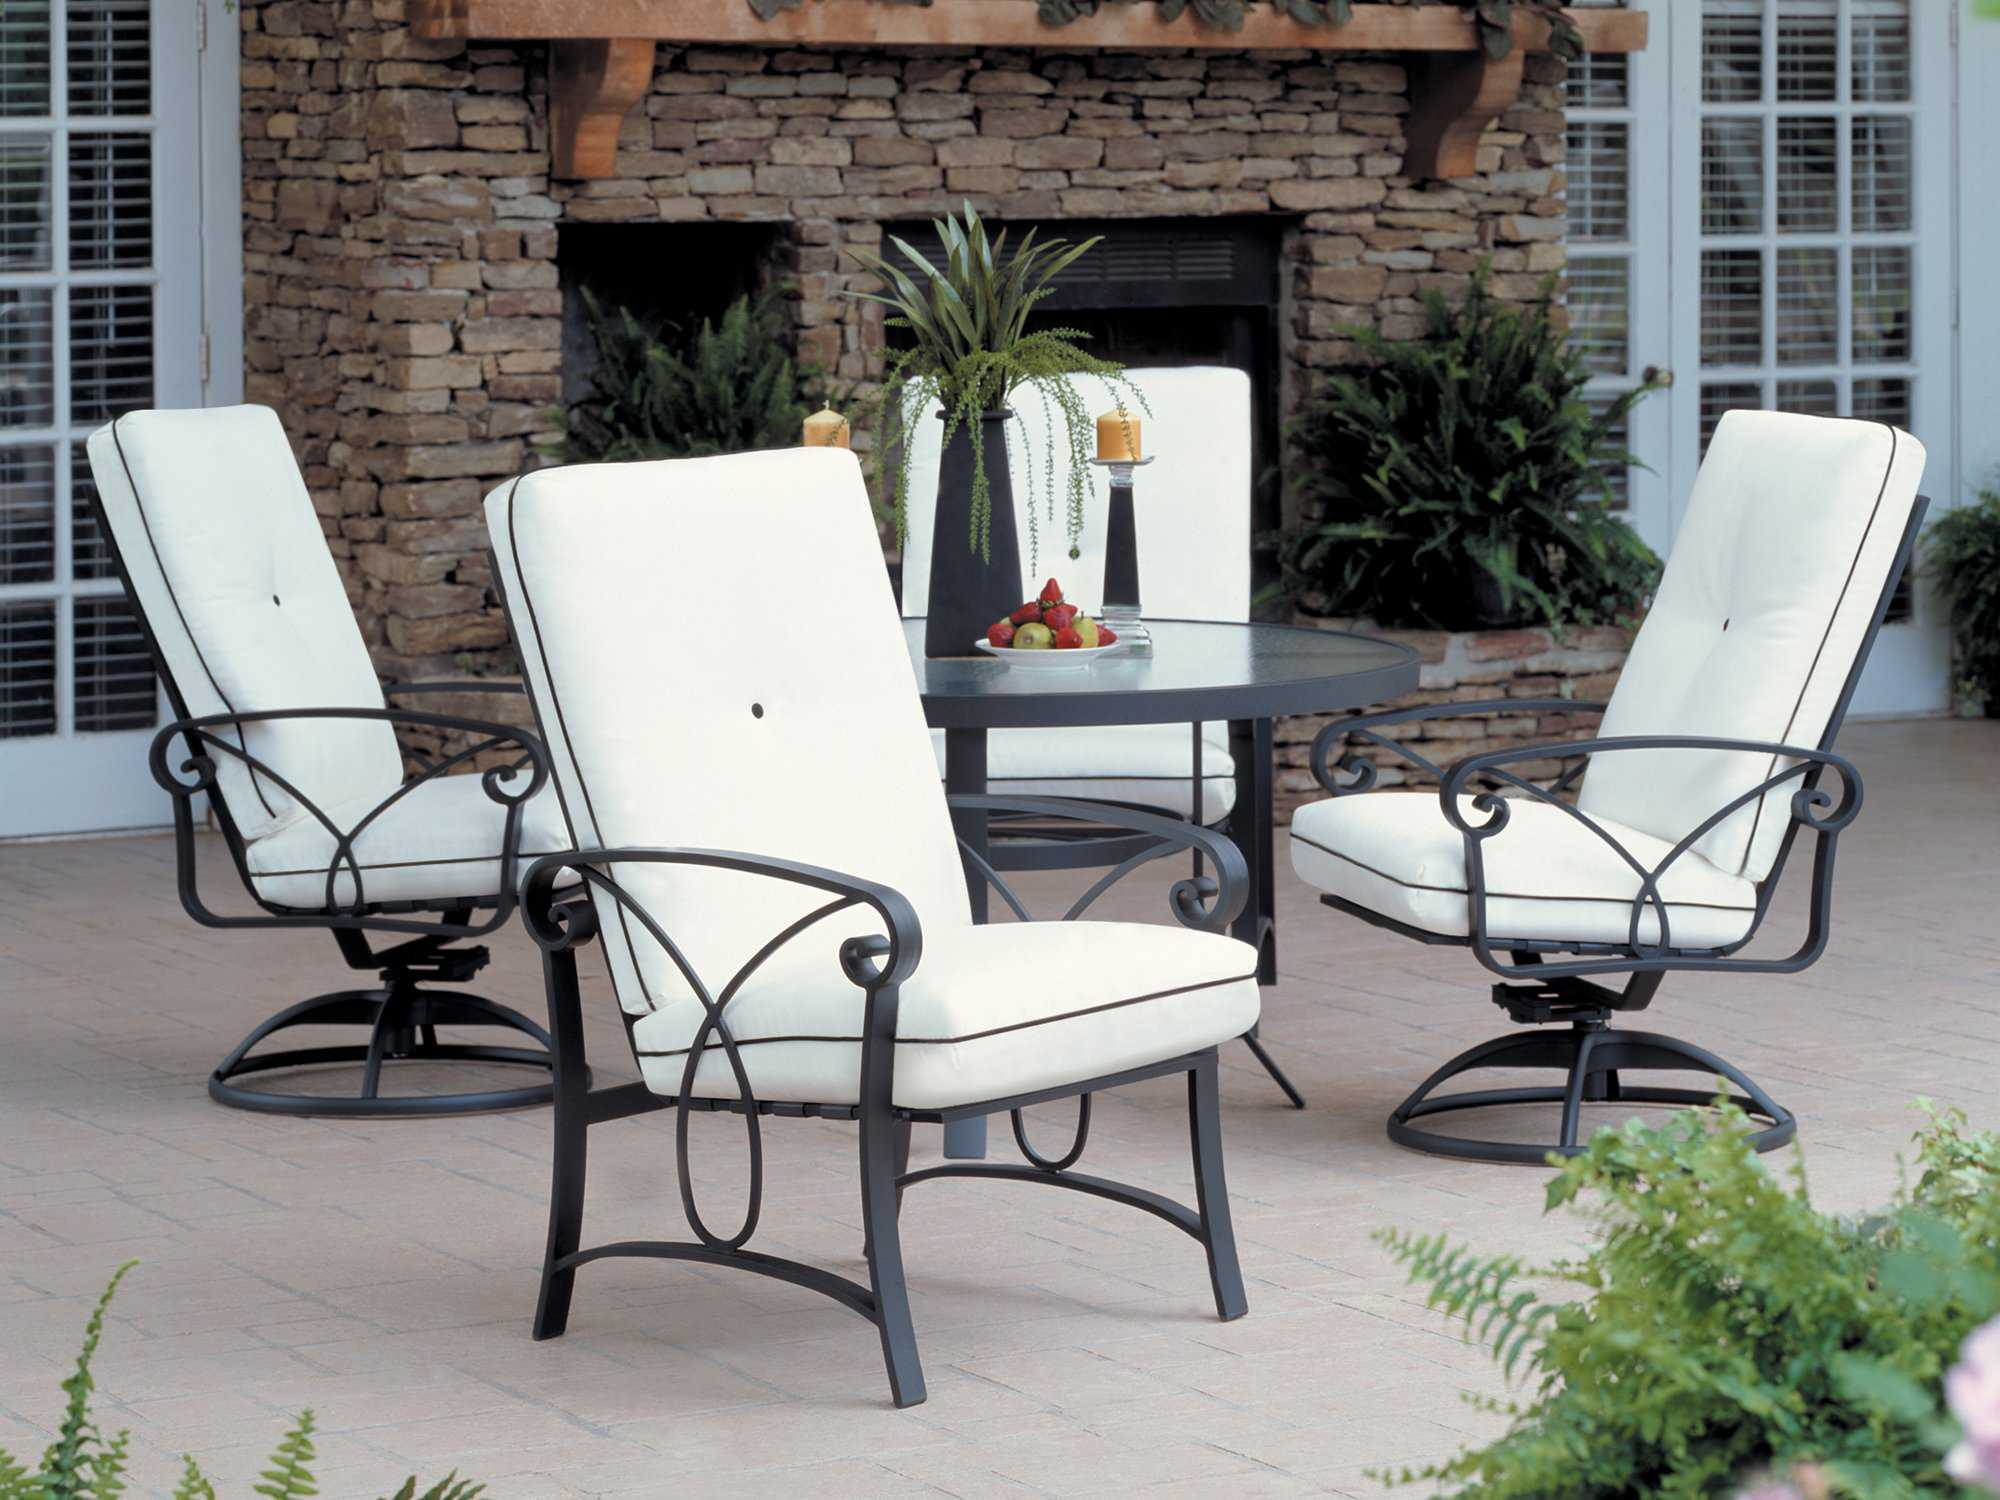 Outdoor furniture transforms the exterior of your home into its own unique and separate living space that you and your family can enjoy weather permitting